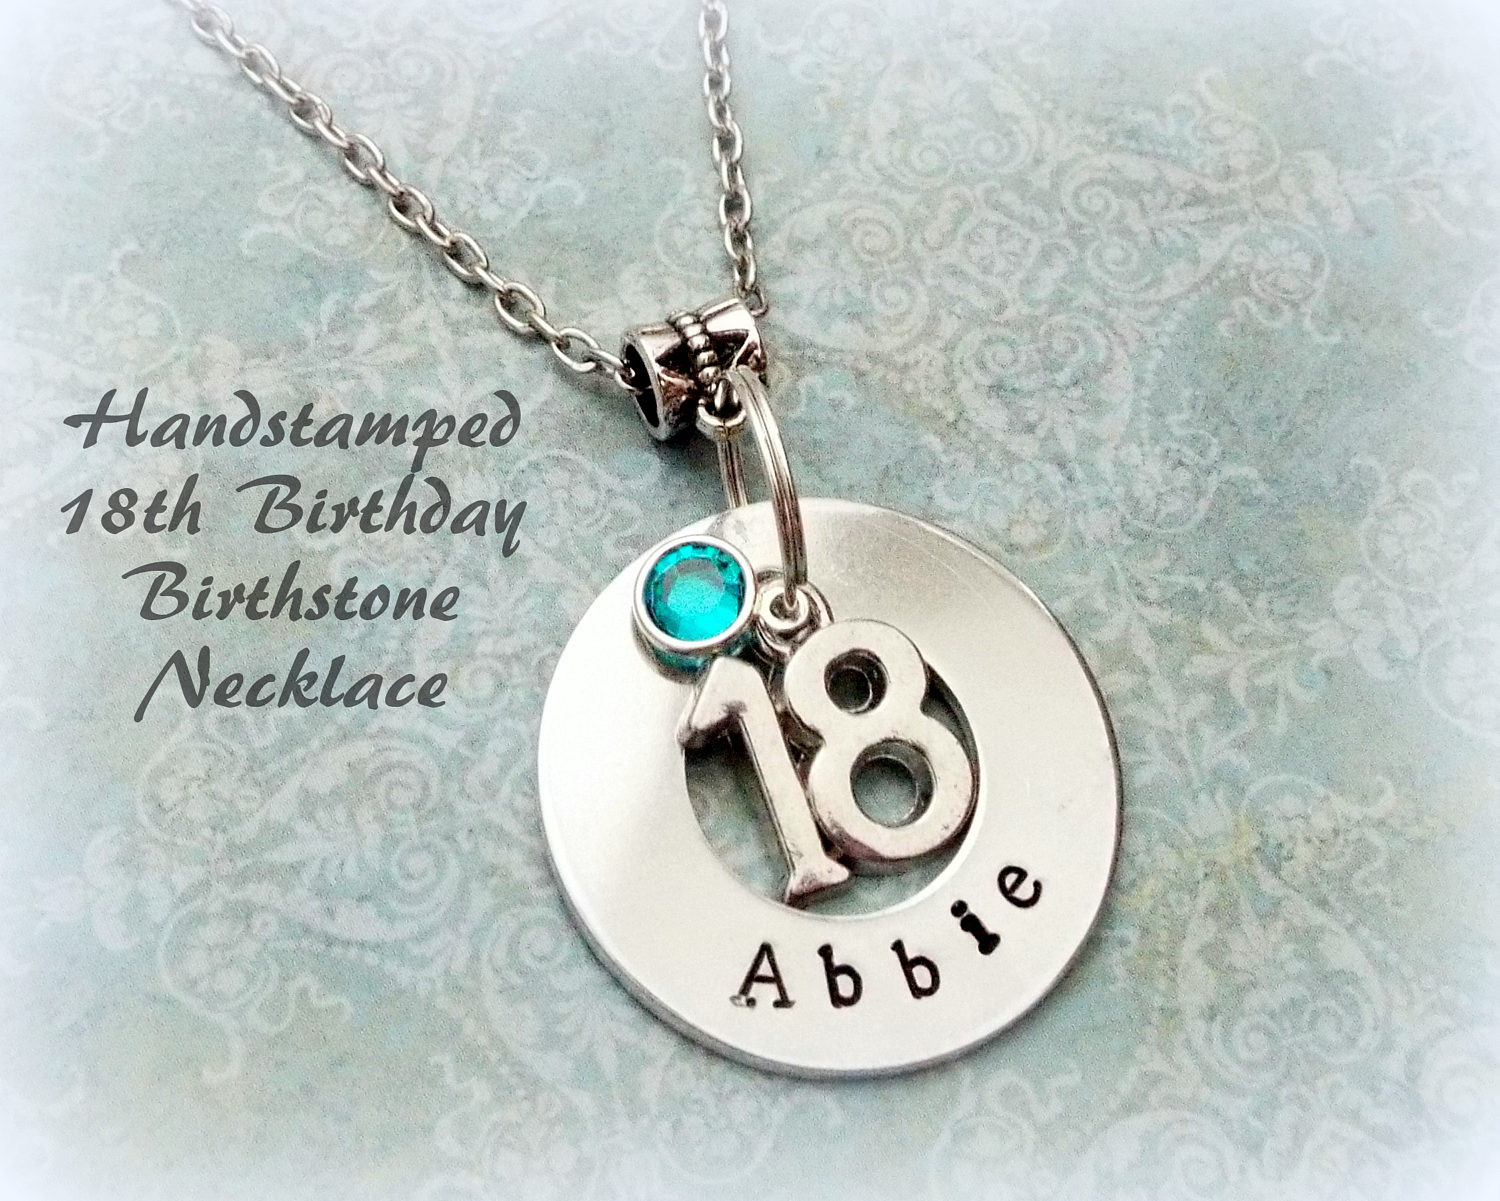 18Th Birthday Gift Ideas For Girl  18th Birthday Gift Personalized Handstamped Girl